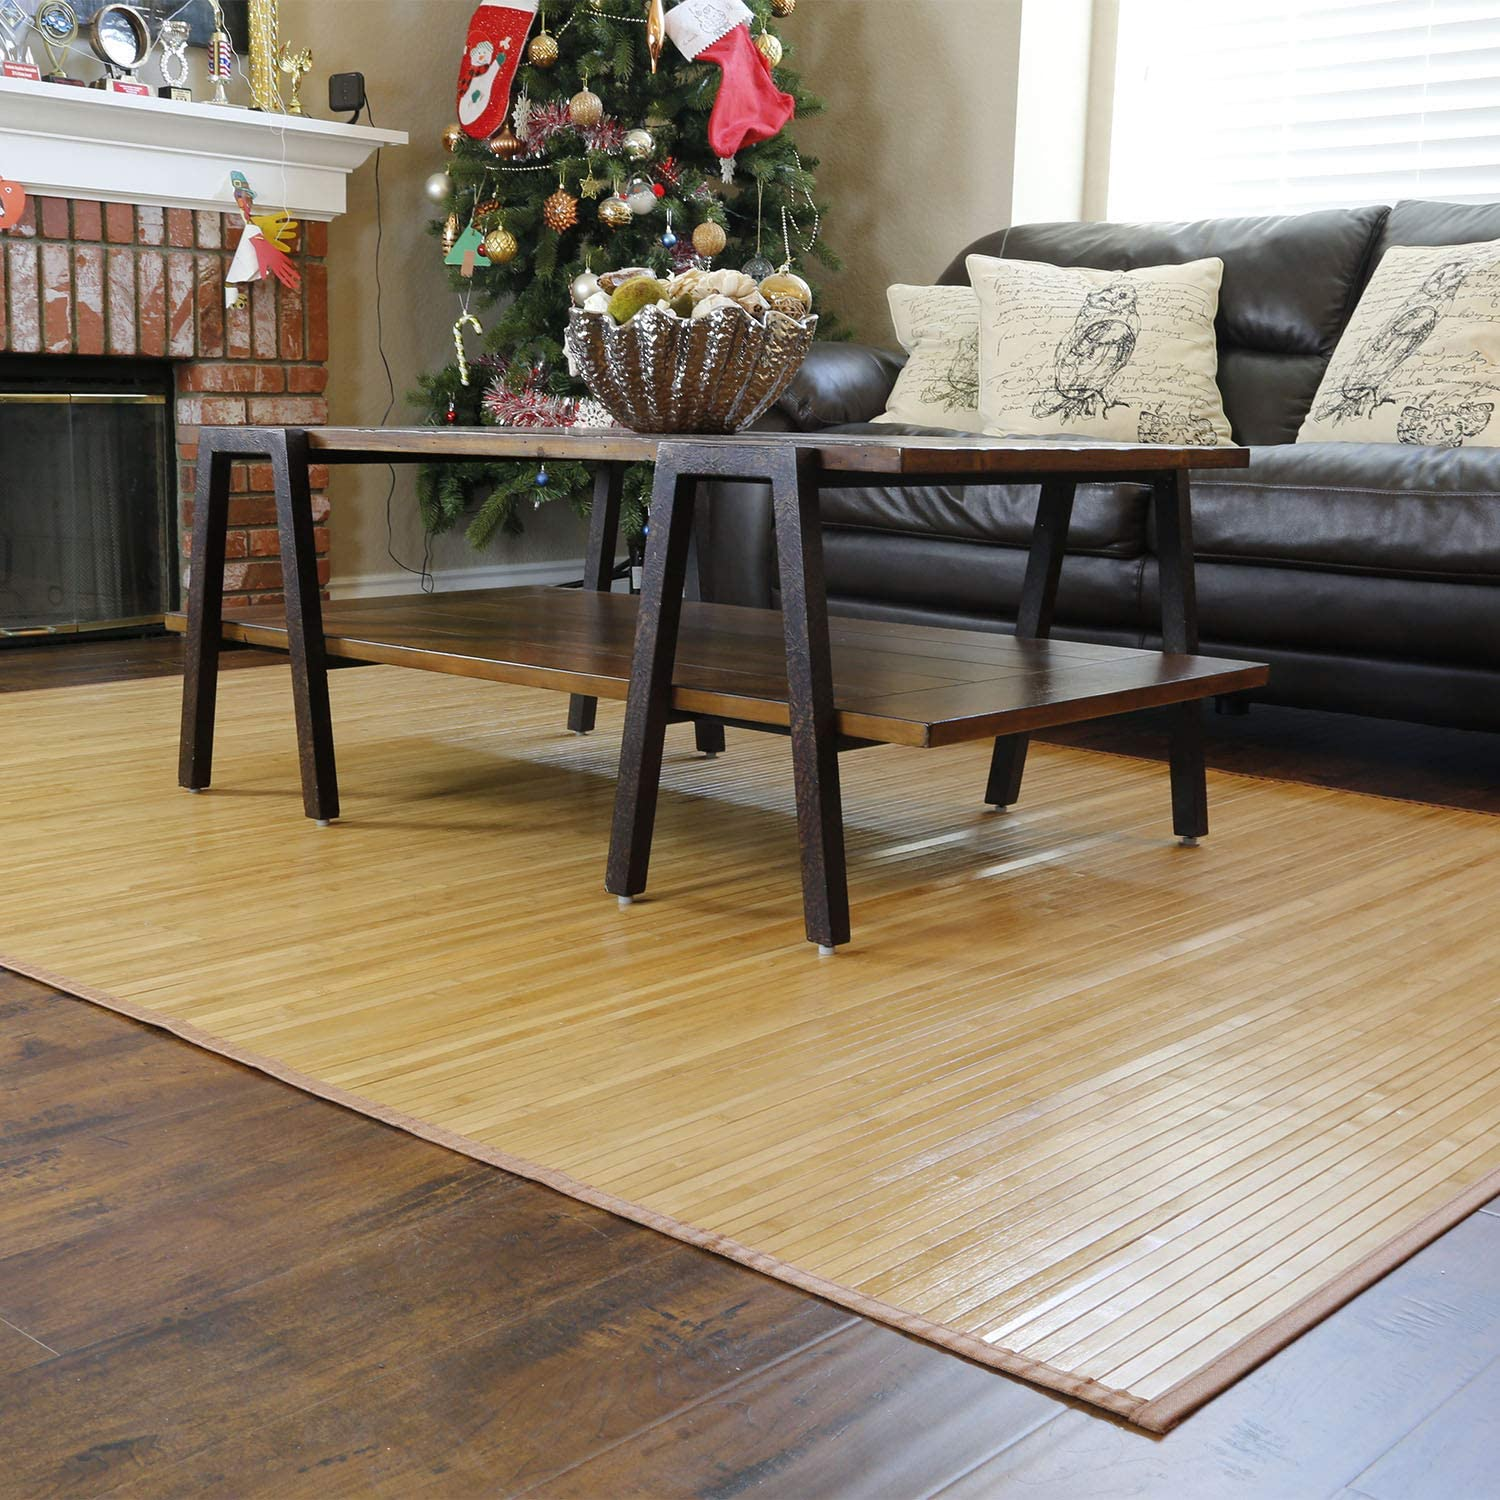 Home Aesthetics Natural Bamboo 5' 25% OFF X Floor 60